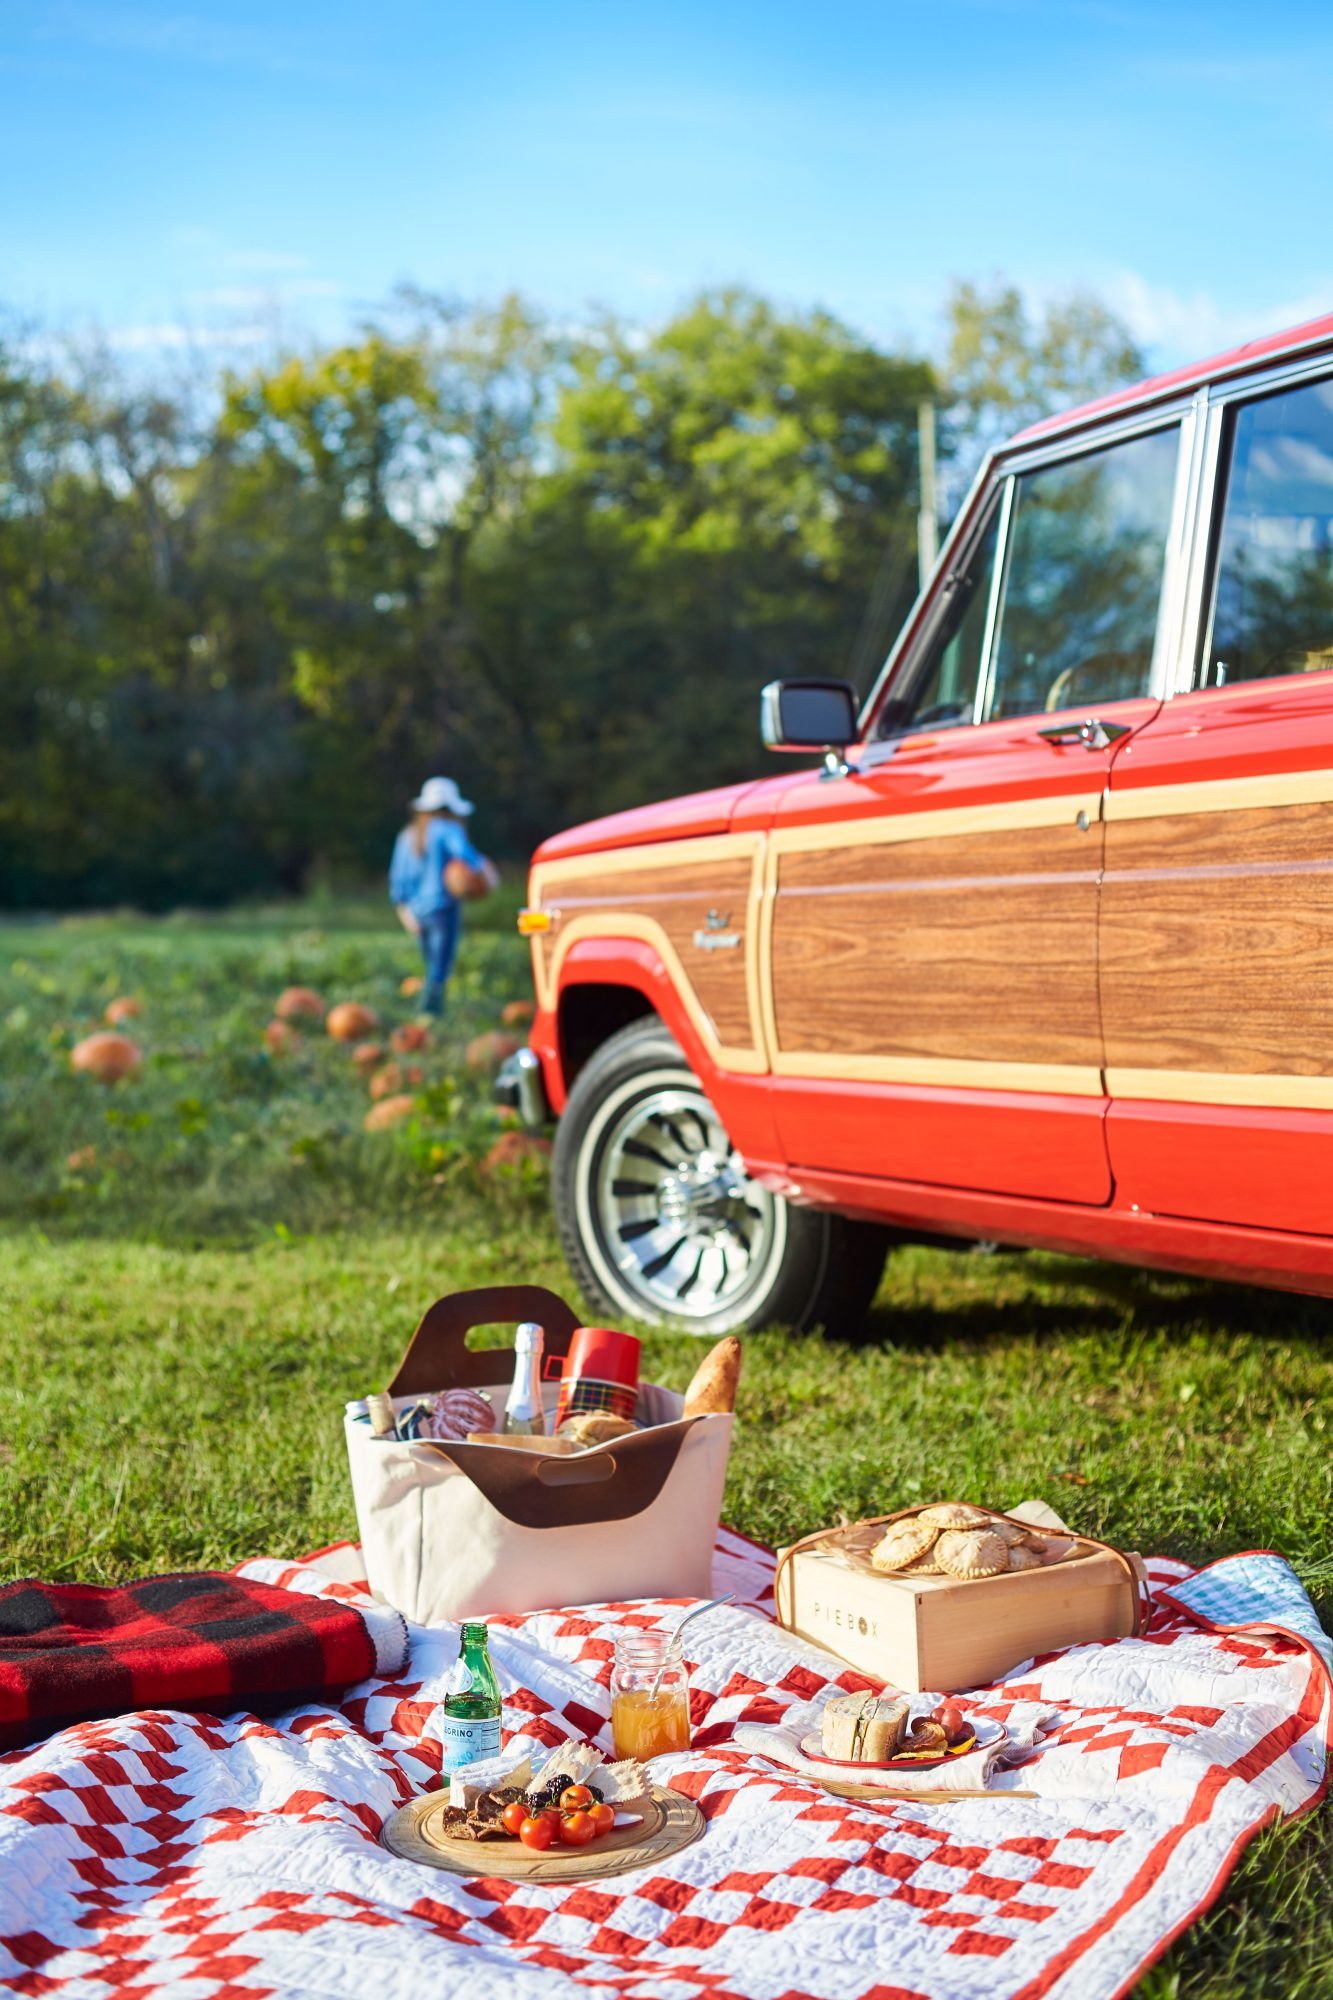 Katie Jacobs Fall Tailgate at Pumpkin Patch Picnic Set-up